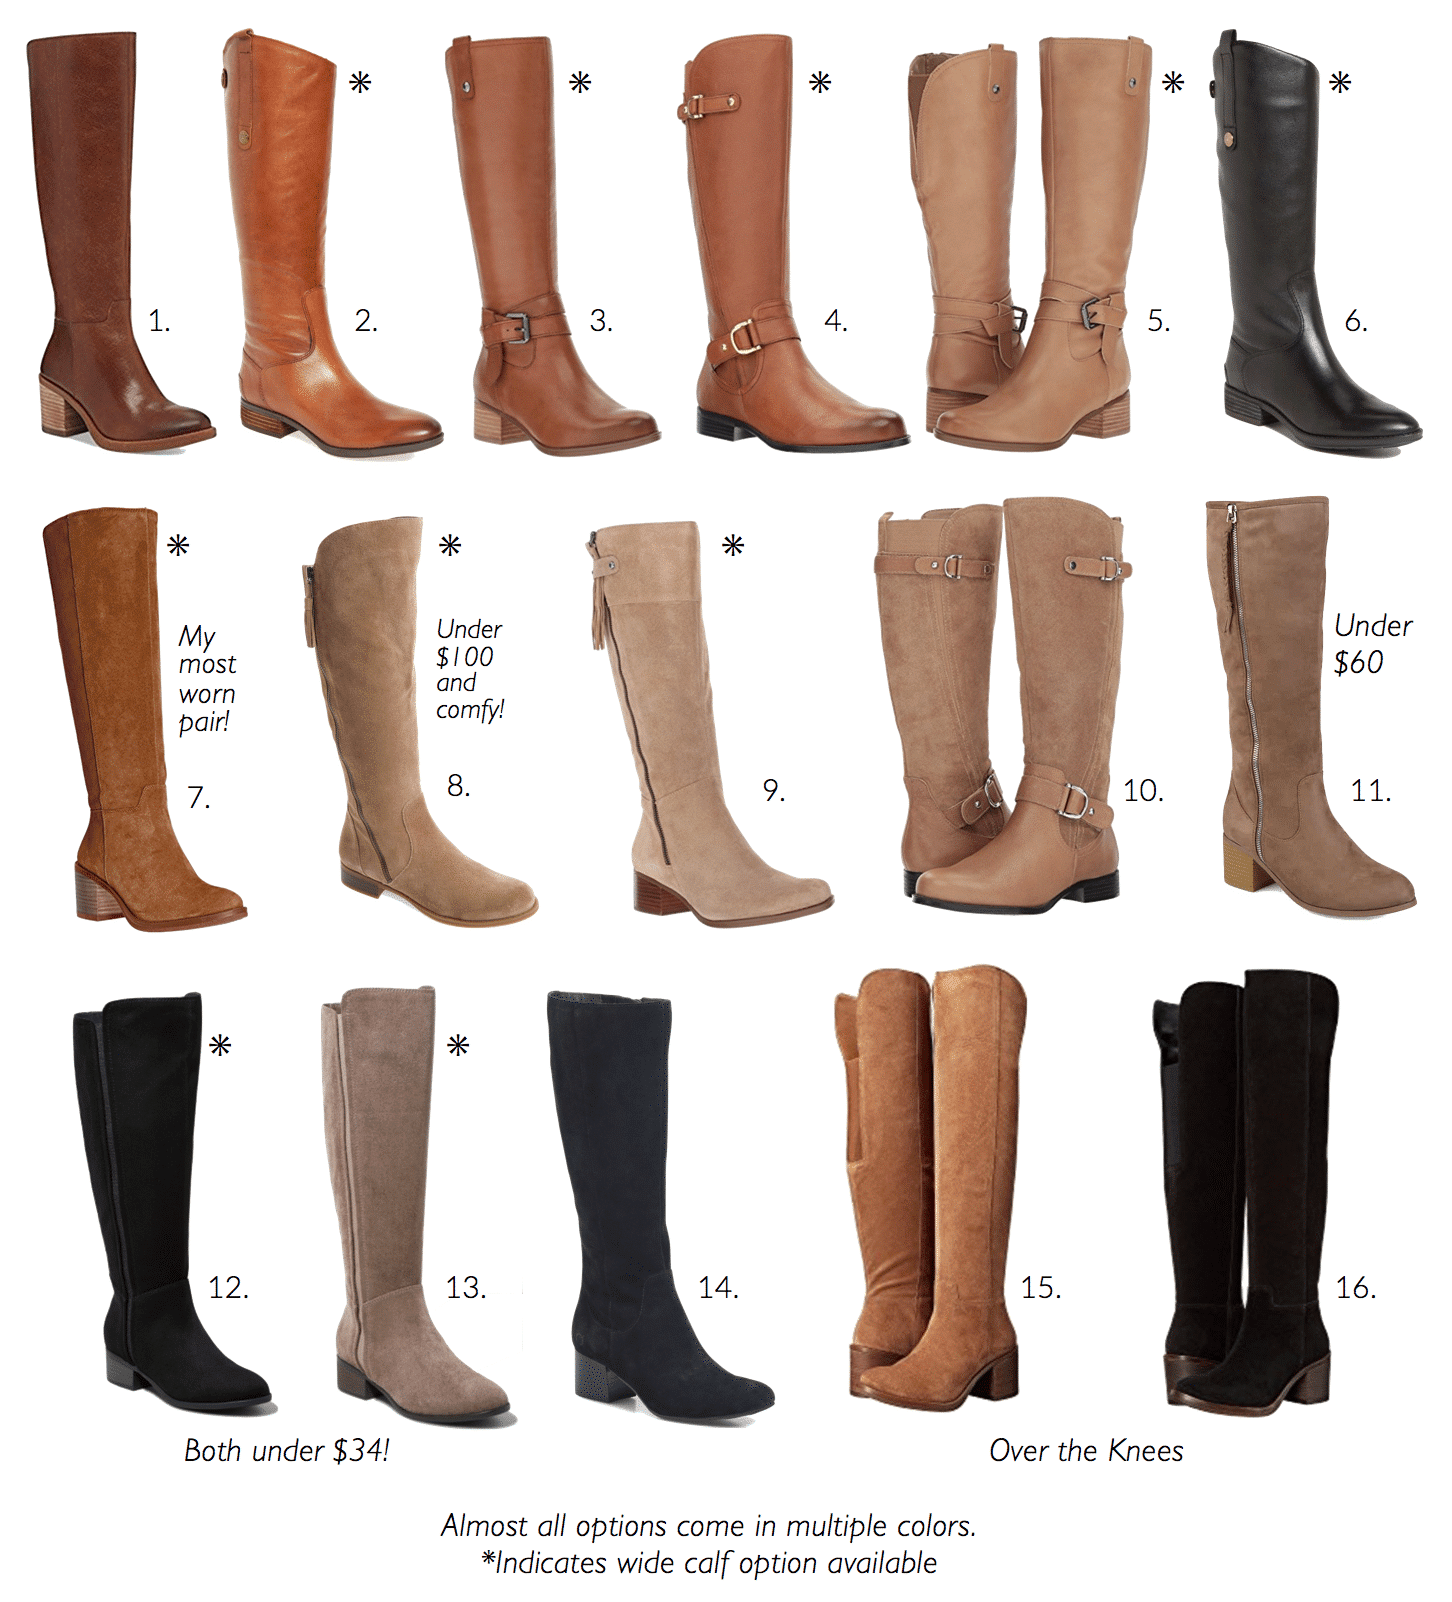 807383f3716 Tips for Buying Boots + 16 Tall Boots (Regular and Wide Calf Options)